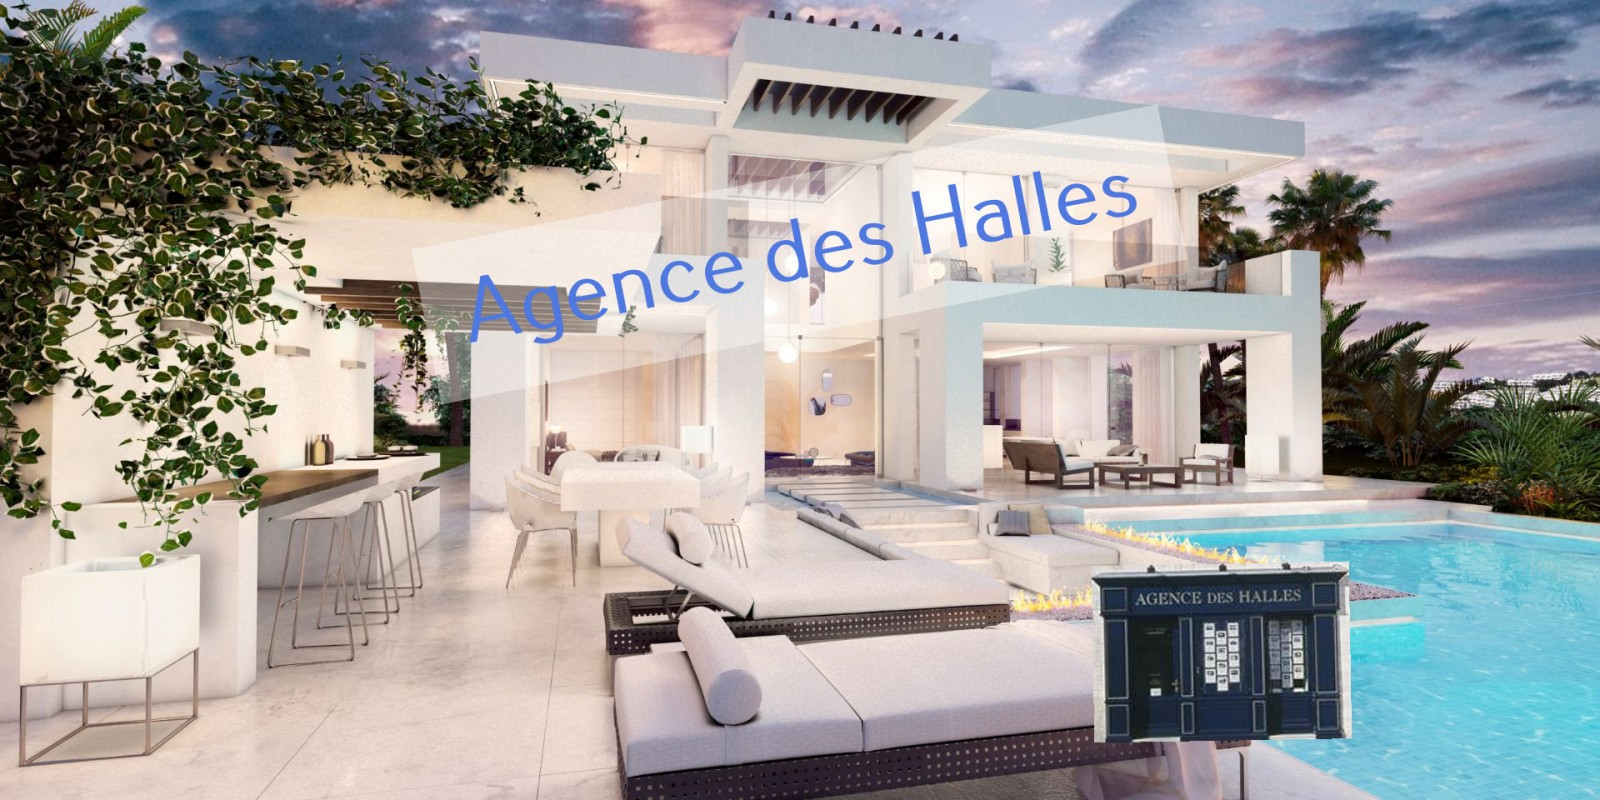 For sale House 212m² in Marbella Costa del Sol ?. House,,. Price to Buy a House is 750000 EUR. In Marbella for sale House. House was published on sales list 29.1.2020 1704849. Selling House in Marbella Costa del Sol ?, Spain.